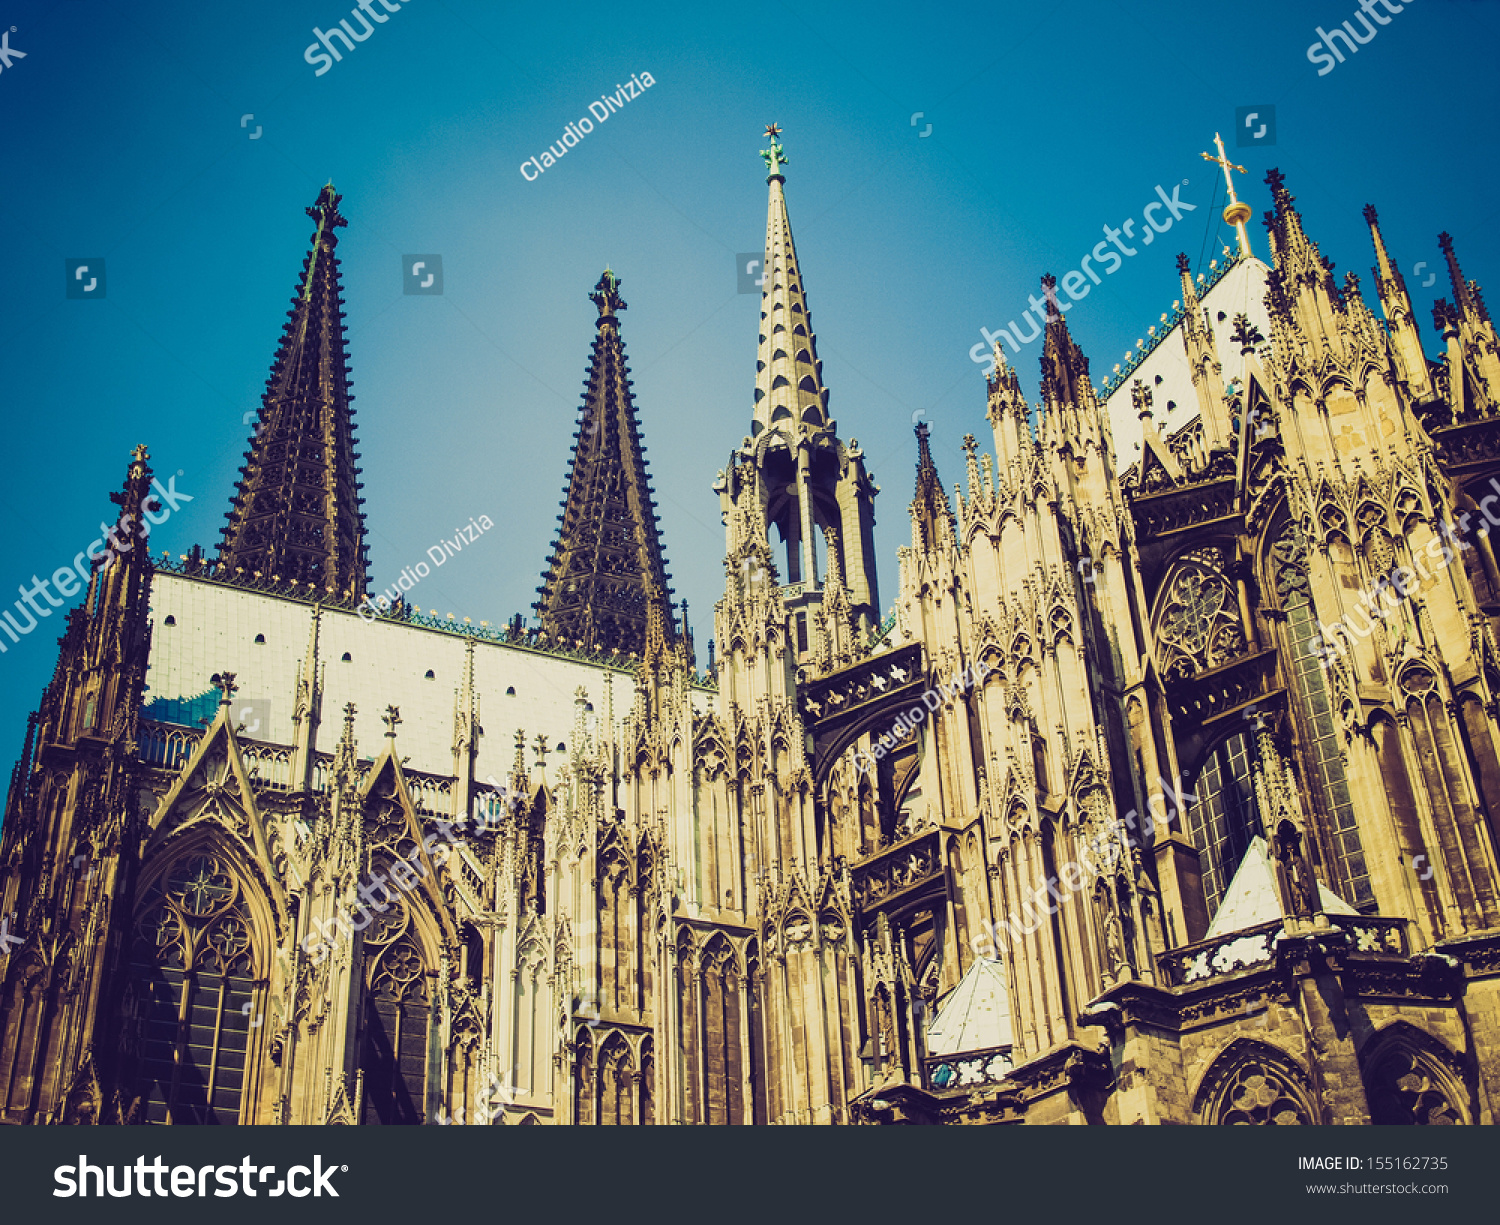 vintage looking koelner dom cologne cathedral stock photo. Black Bedroom Furniture Sets. Home Design Ideas